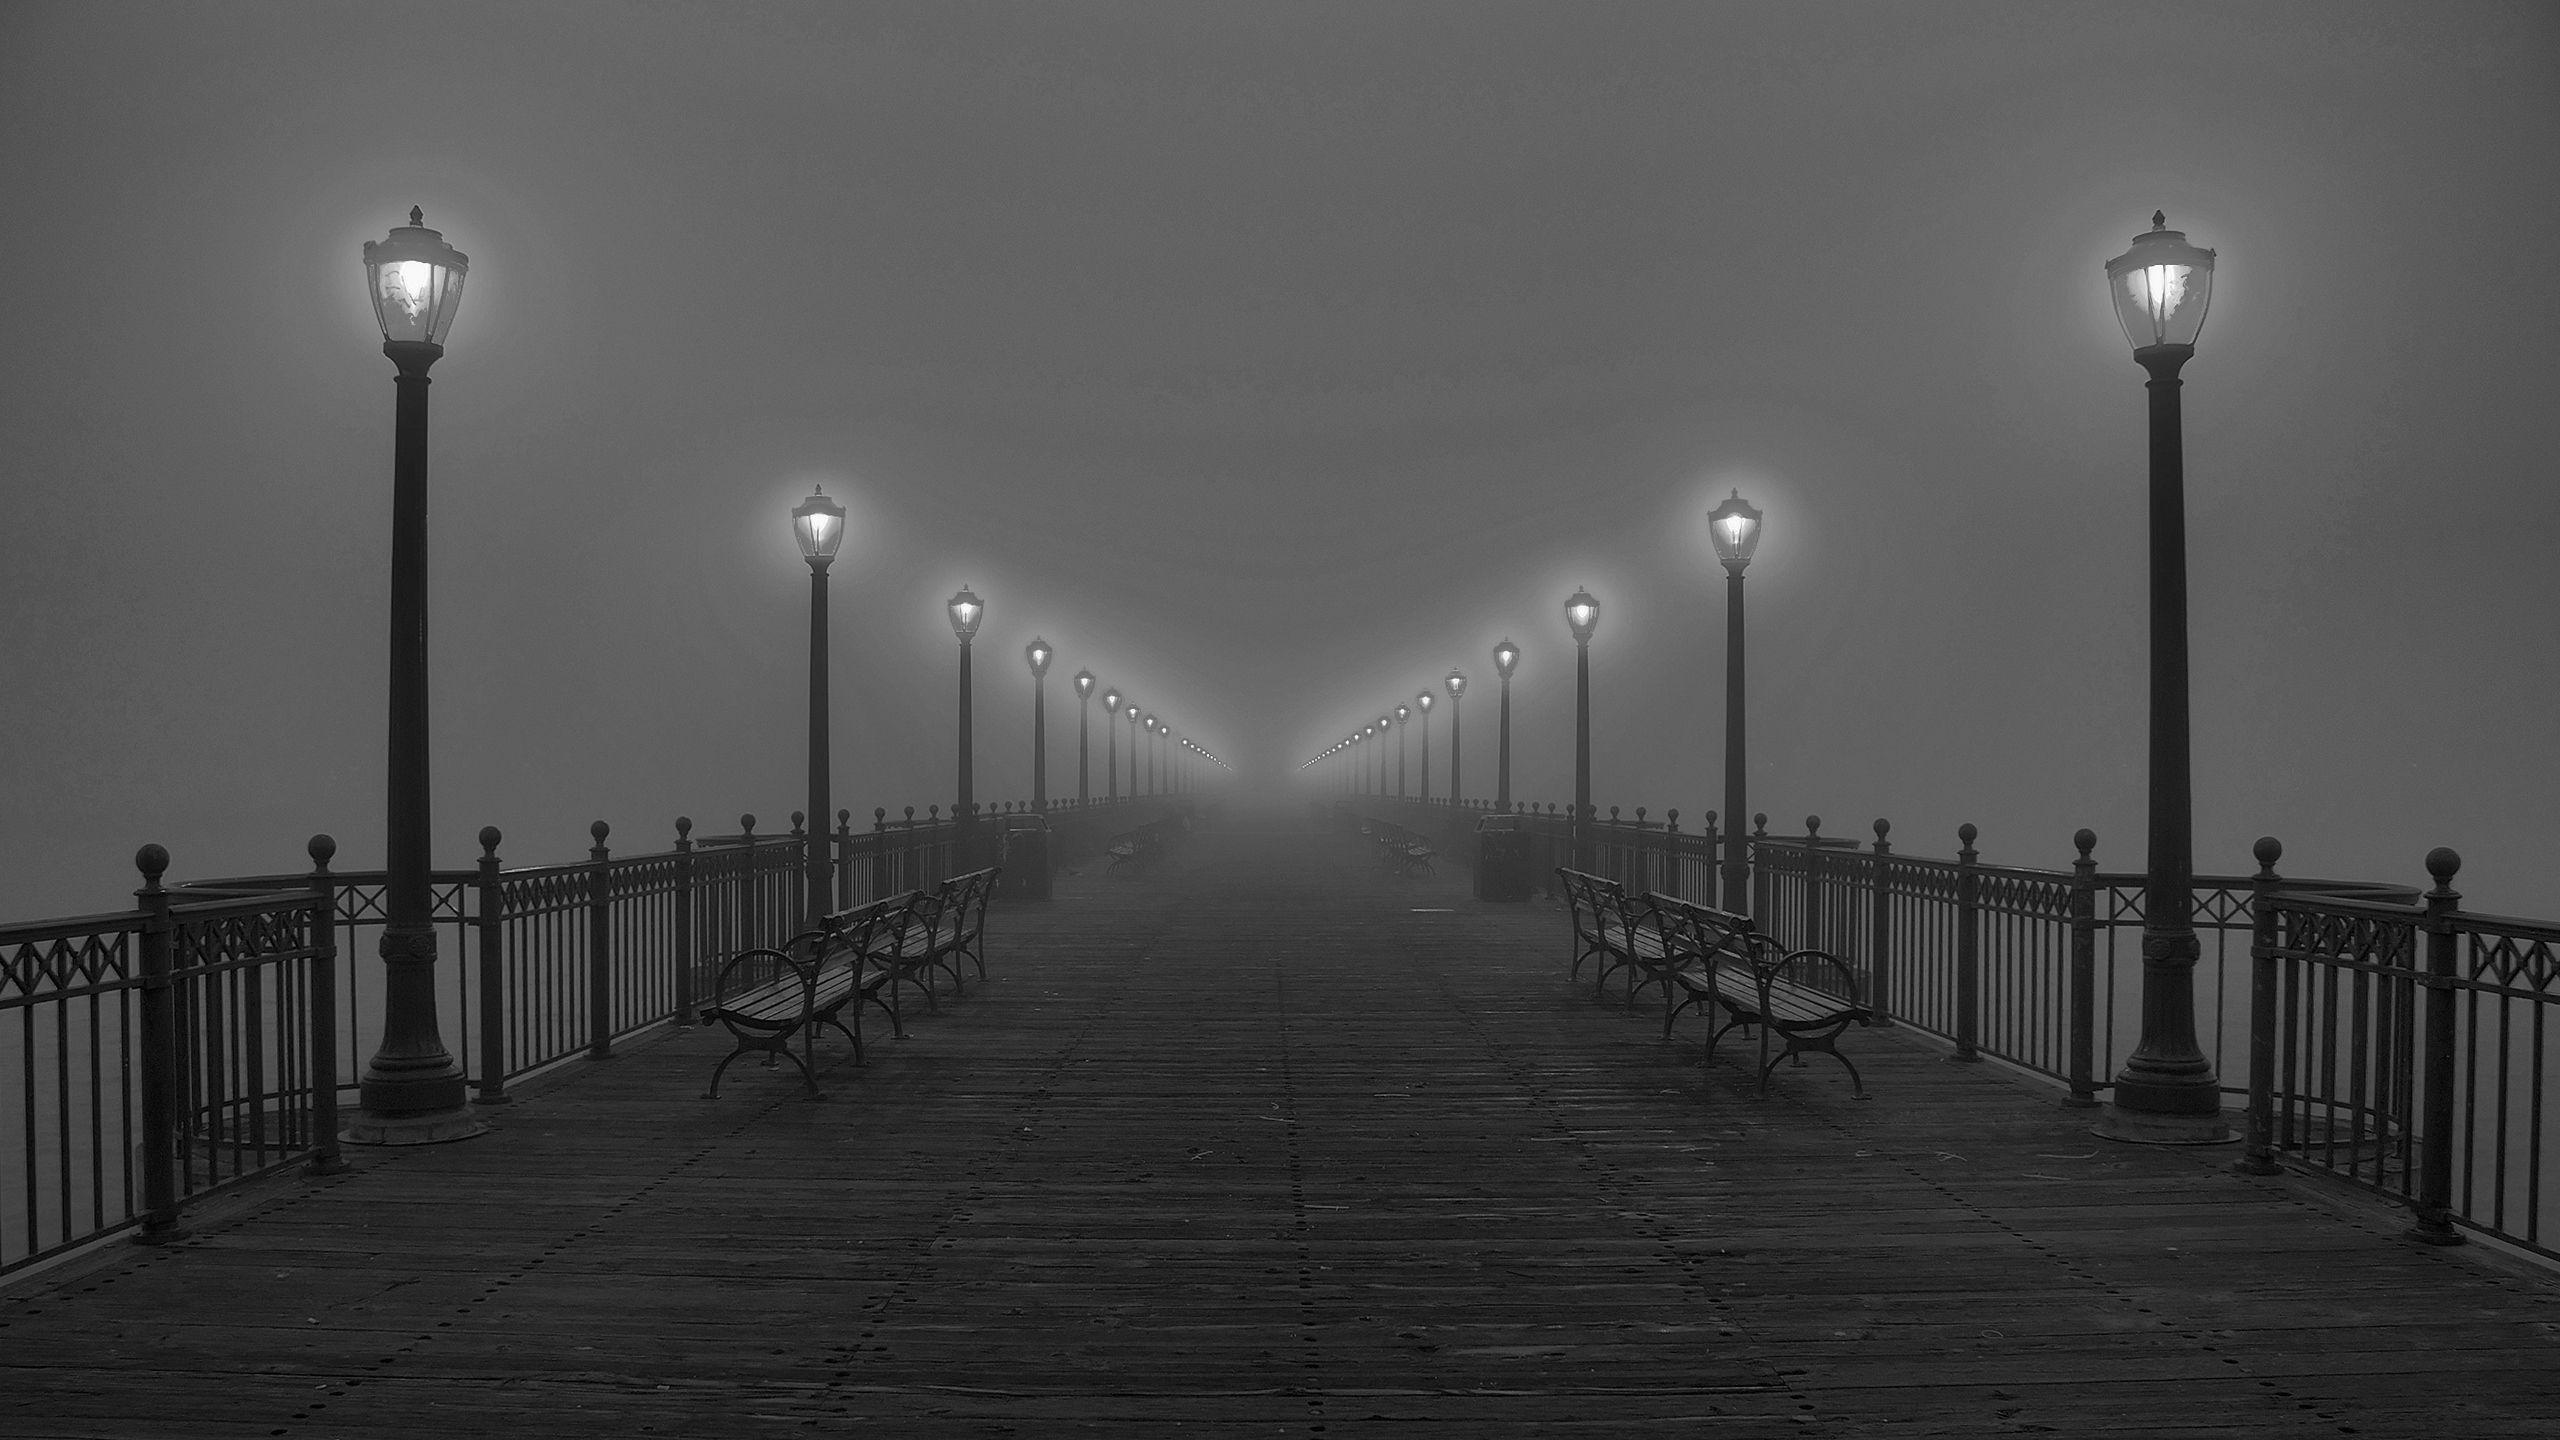 Black And Wallpapers 2560x1440 Black, And, White, Fog, Pier, Lamps